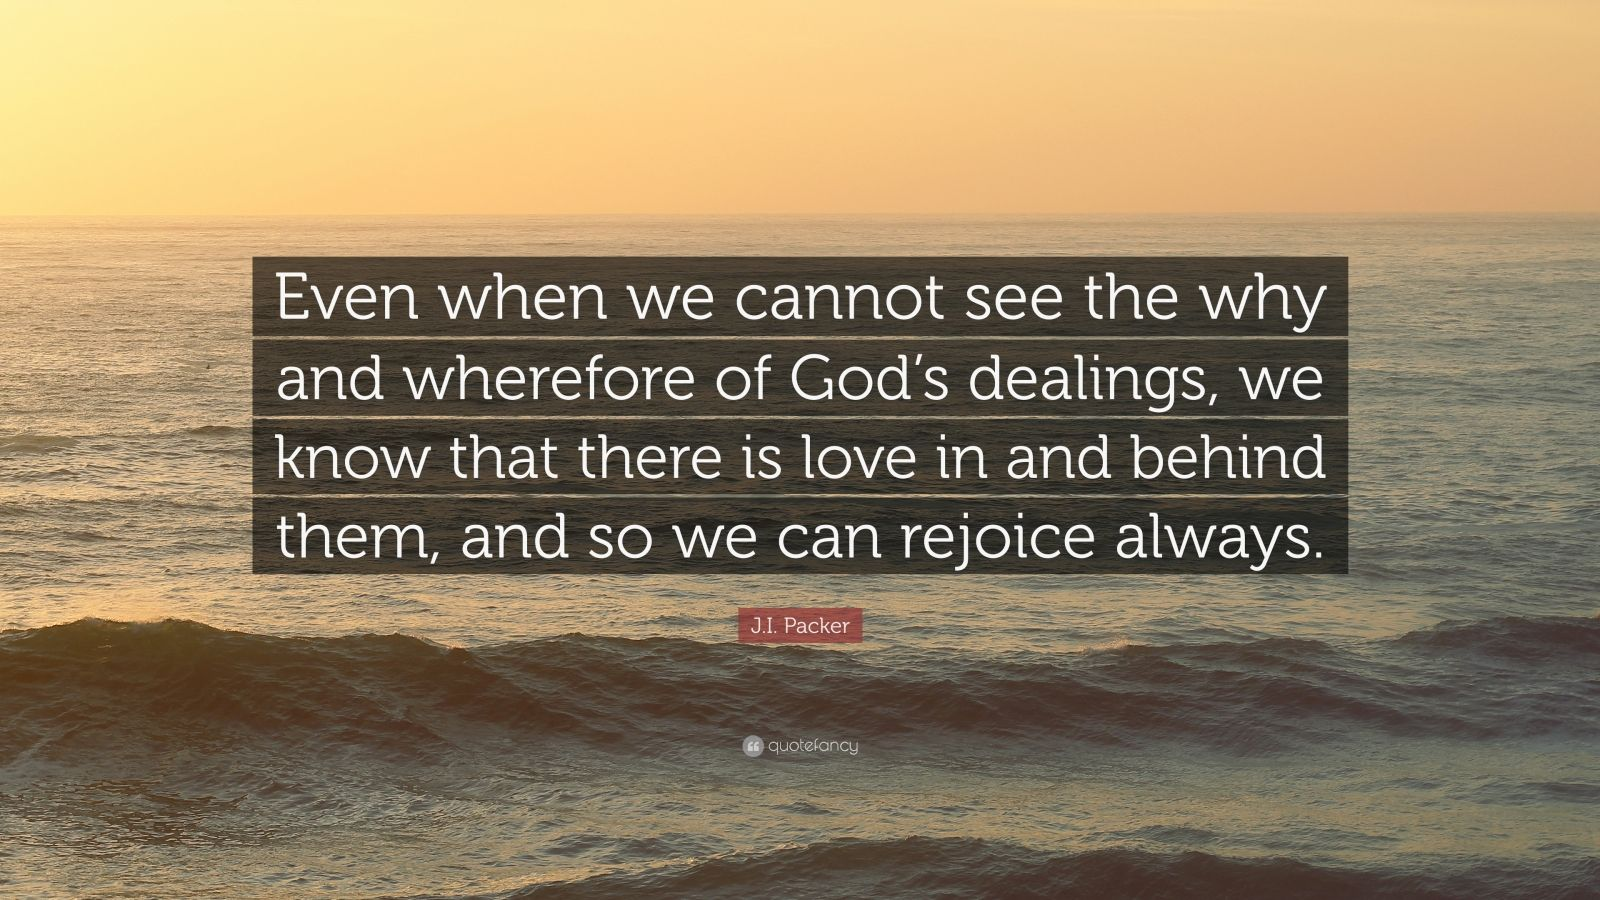 """J.I. Packer Quote: """"Even when we cannot see the why and wherefore of God's dealings, we know that there is love in and behind them, and so we can rejoice always."""""""